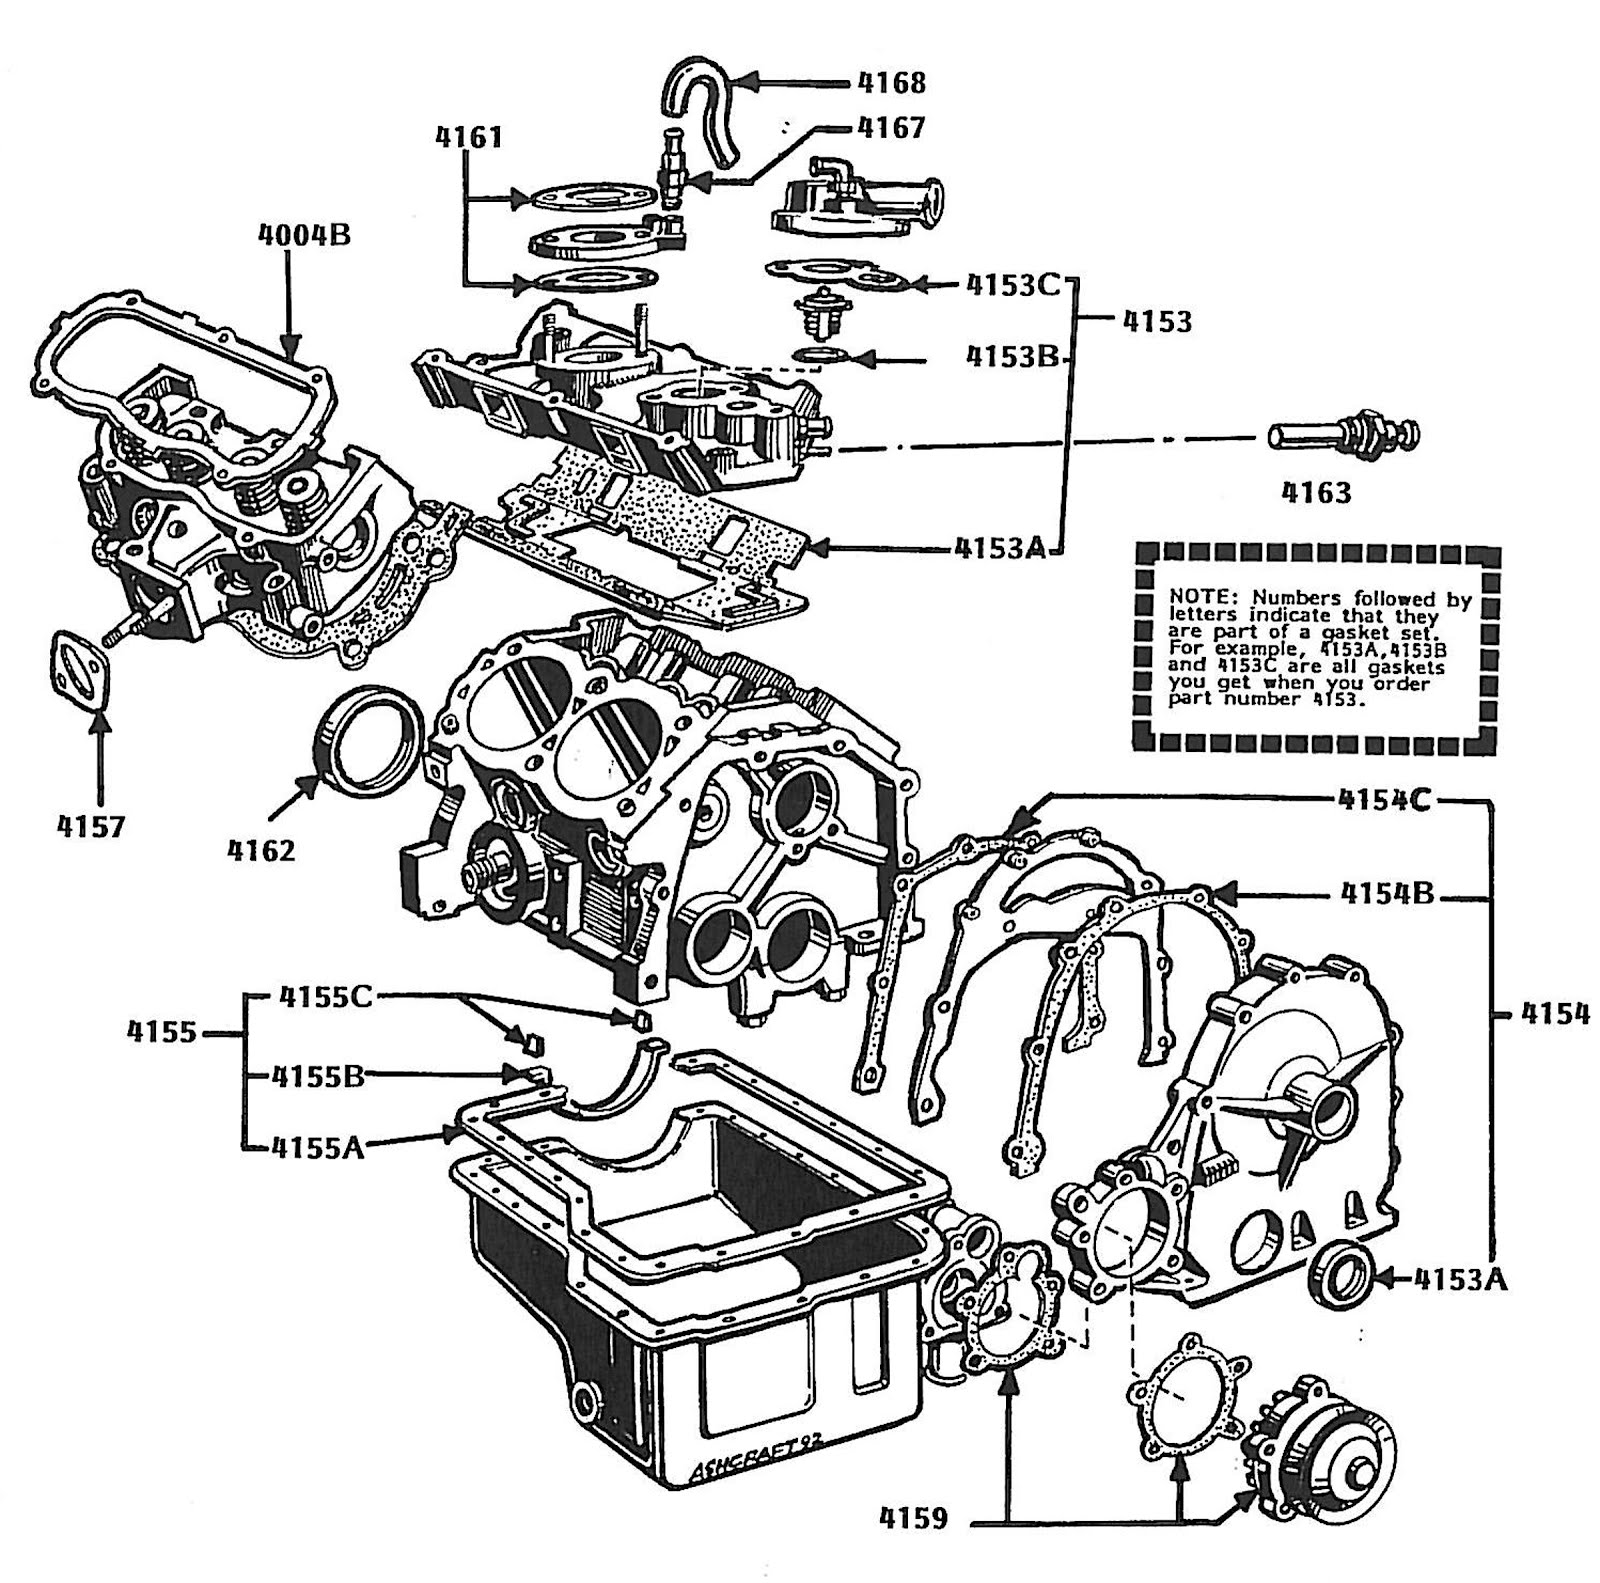 saab journal maintenance overhaul of the v4 engine rh saabjournal blogspot com 1996 Saab 900 Transmission Parts Diagram 1993 Saab 900 Engine Diagram